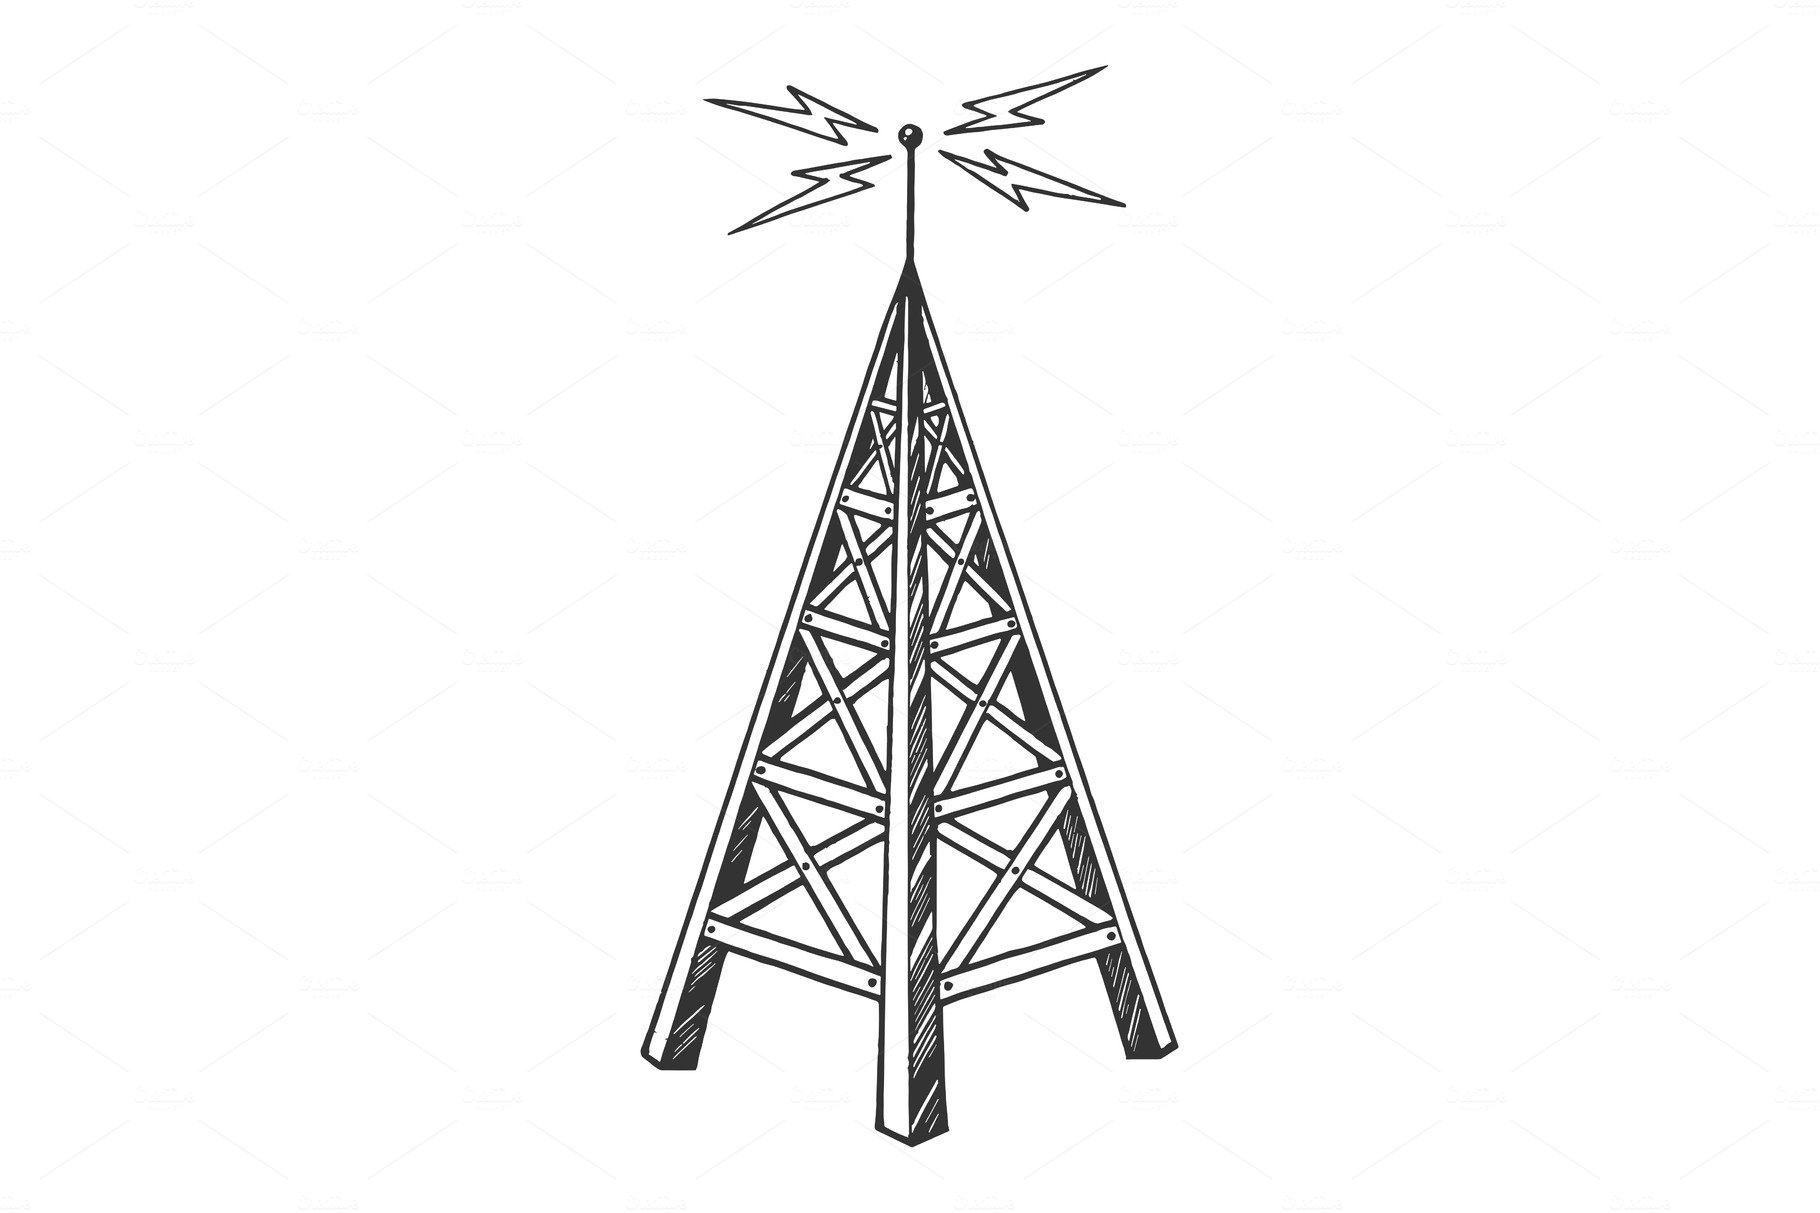 Old radio tower sketch engraving